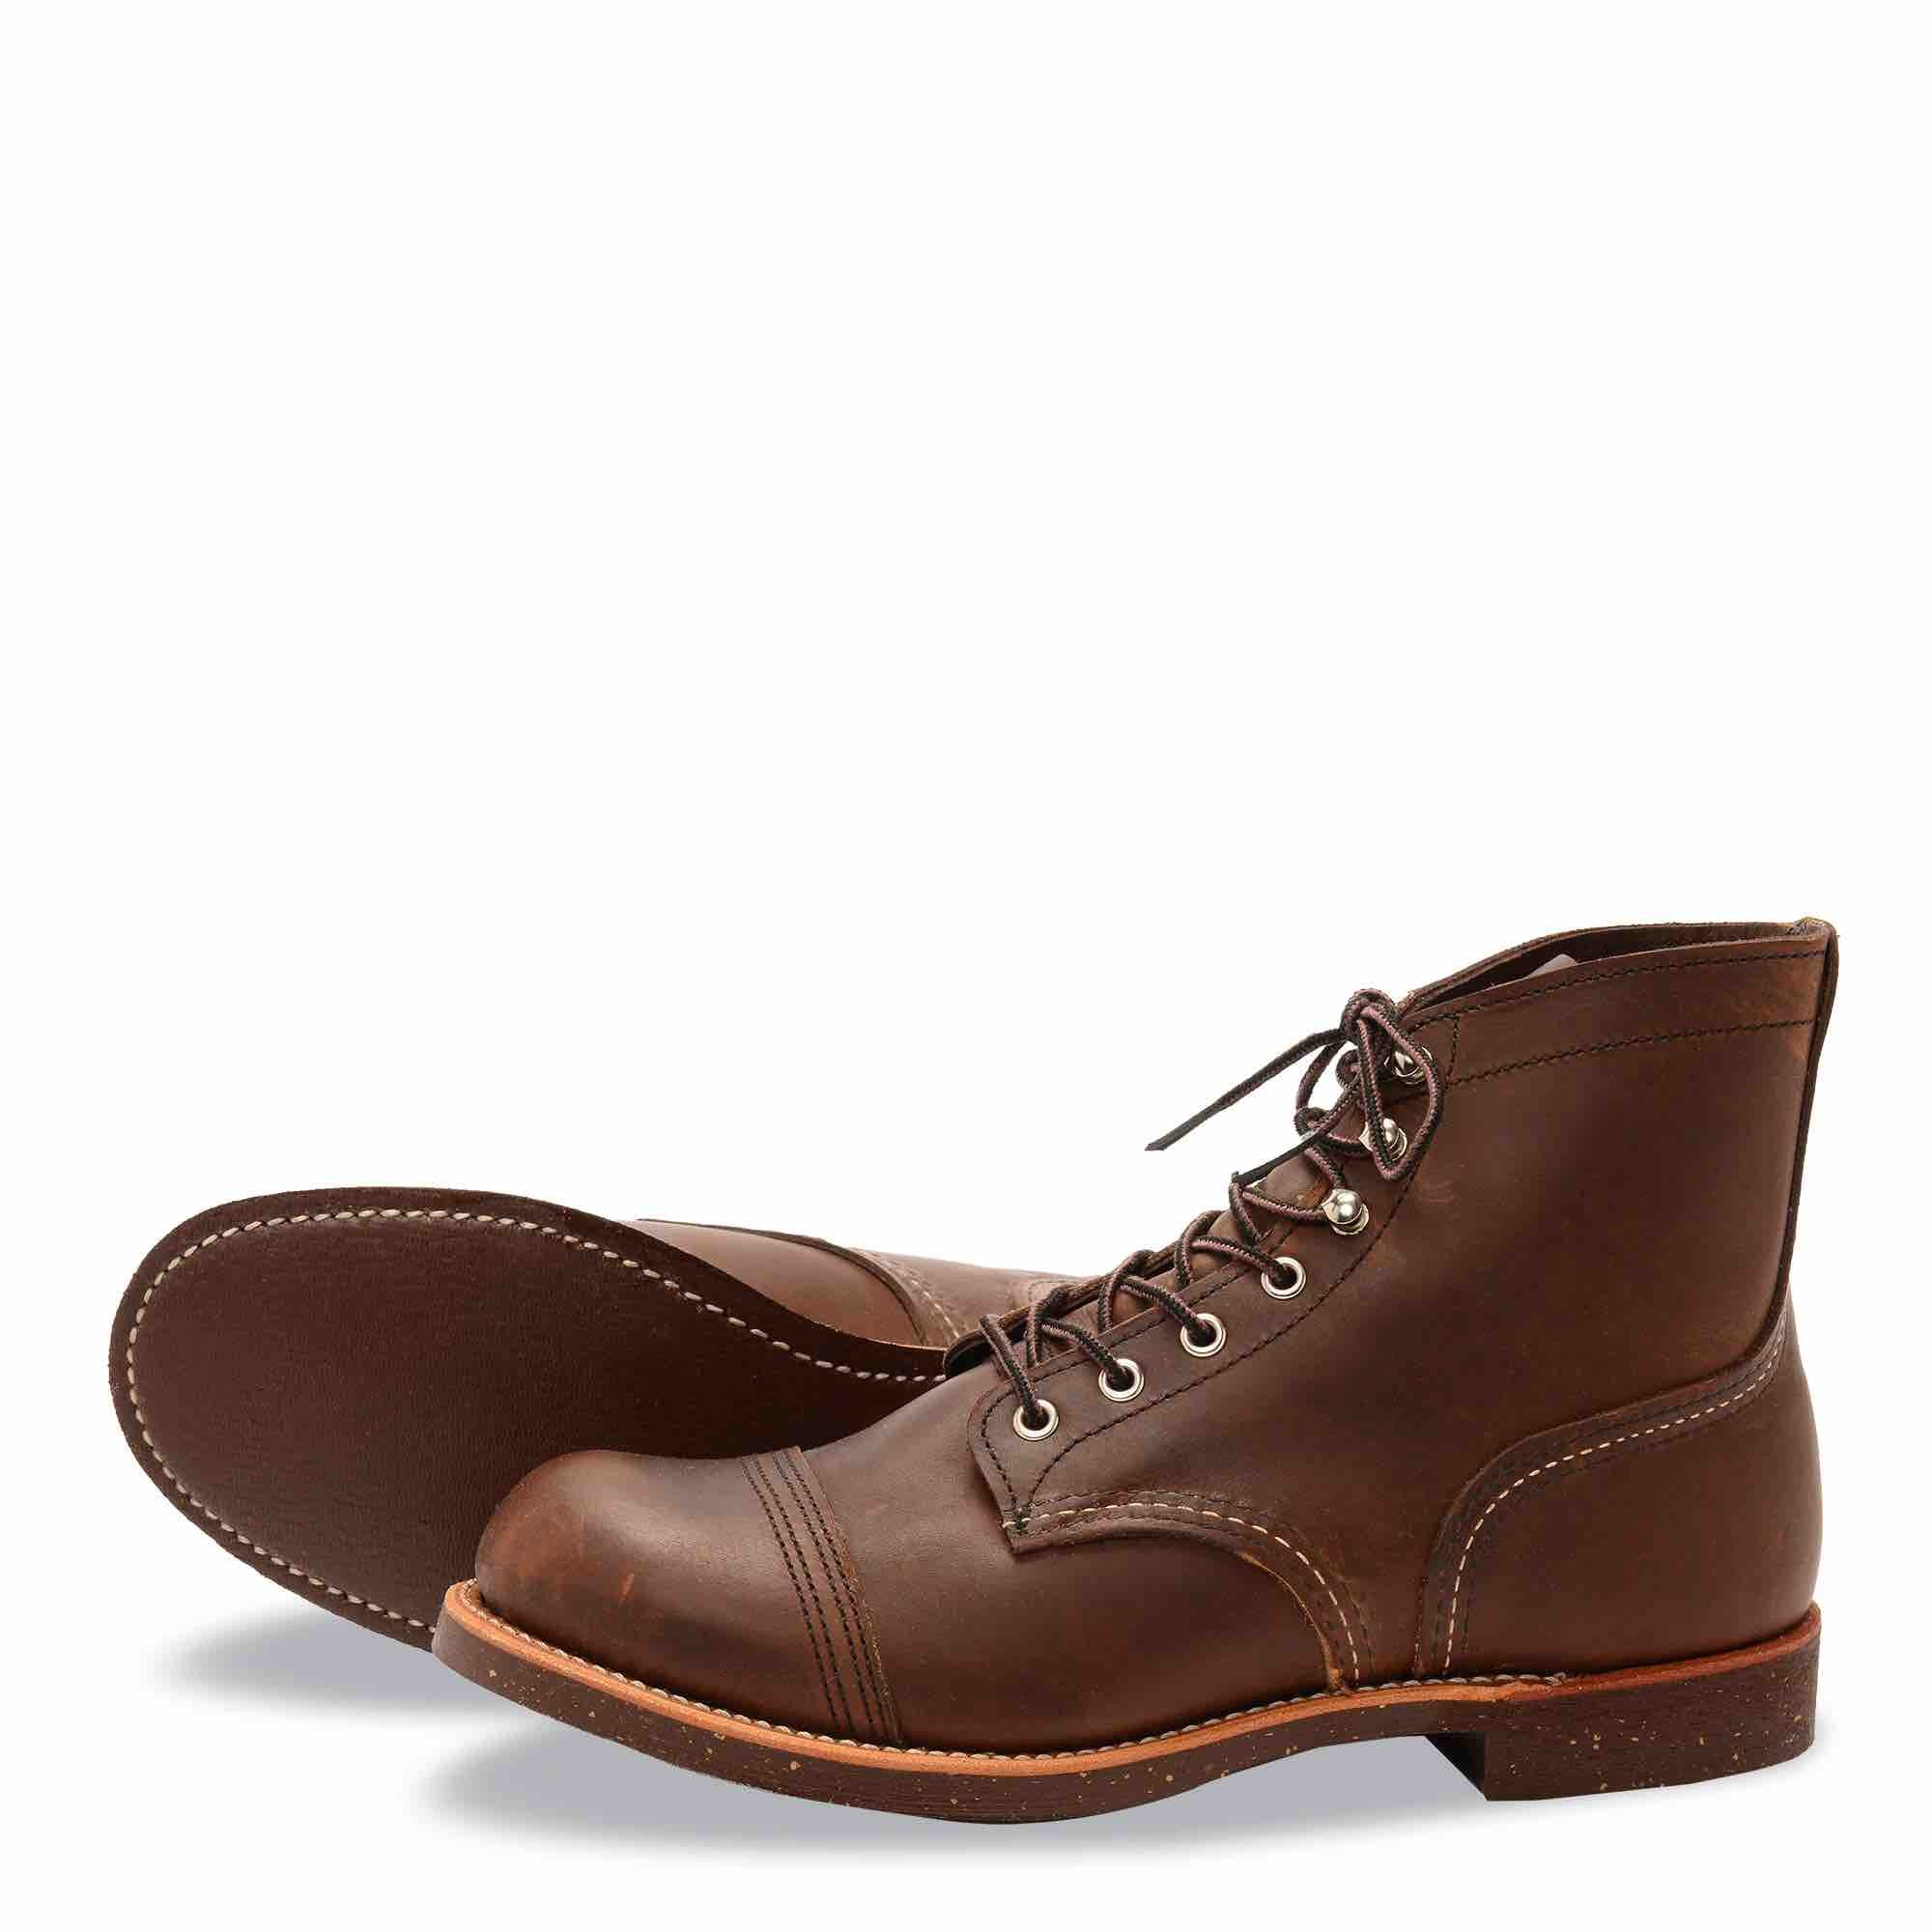 32b5abfc17e Red Wing - 8111 CORK SOLE - Iron Ranger (Amber Harness)